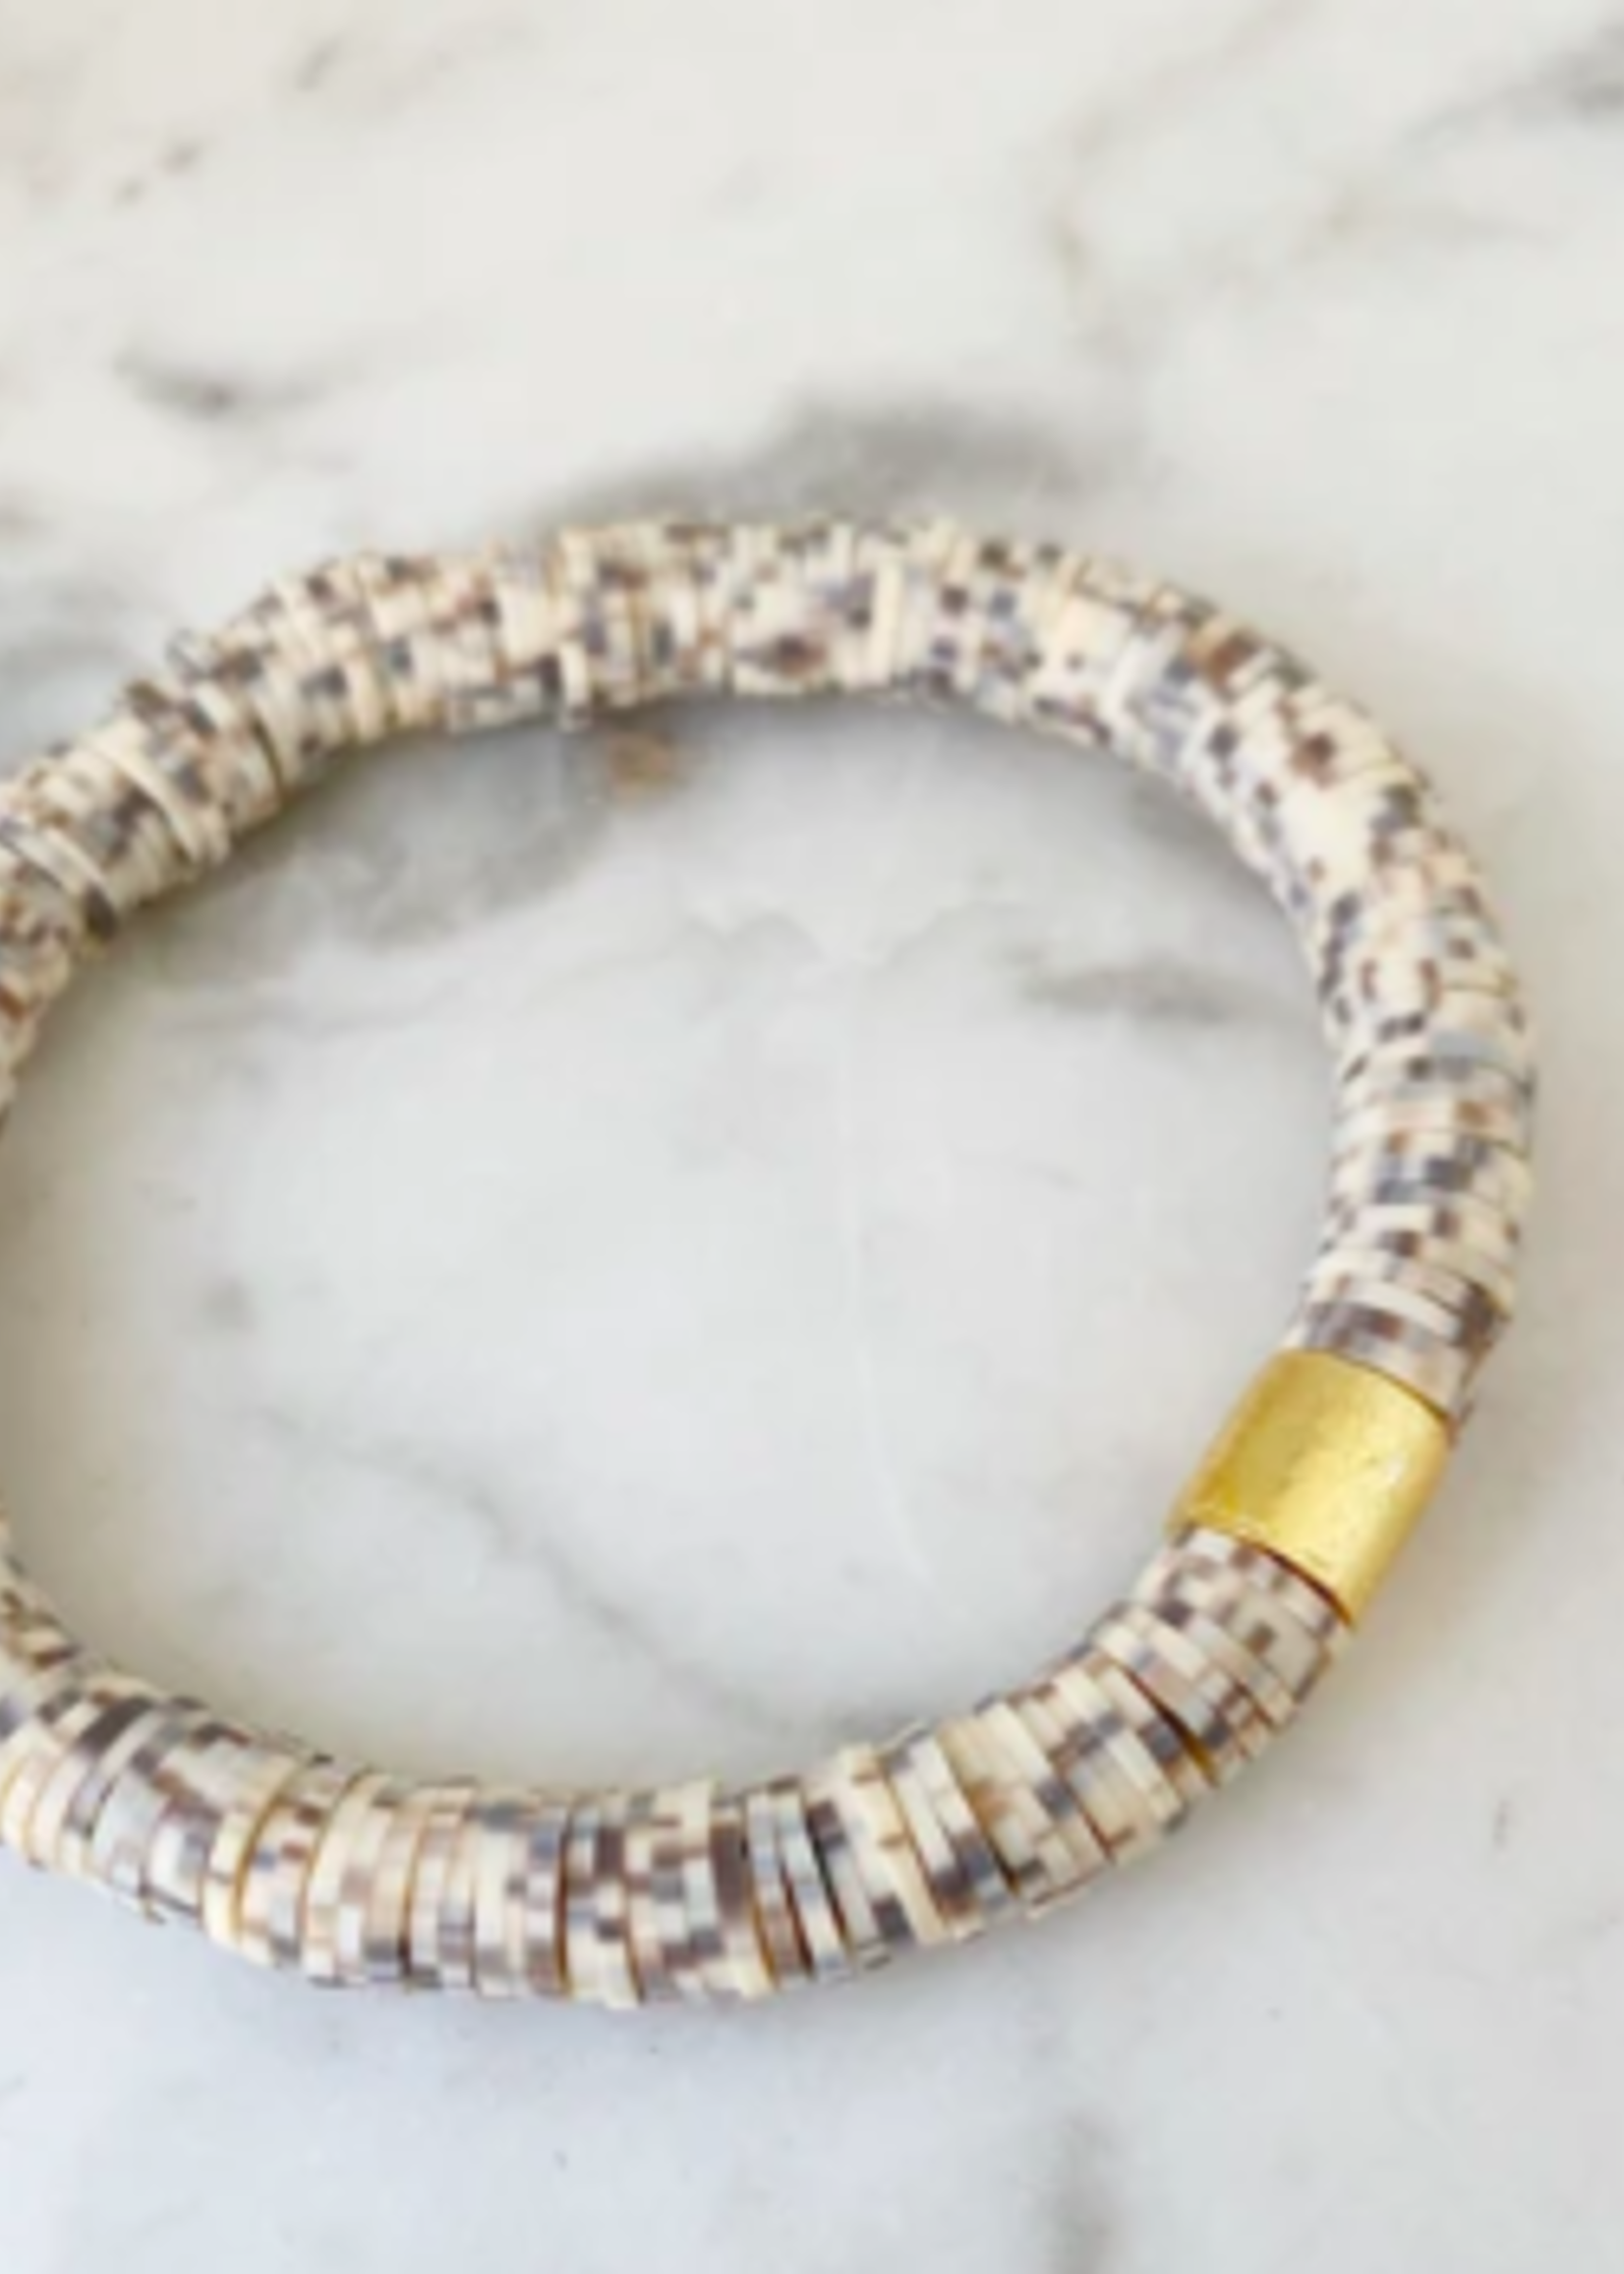 Mod Miss Jewelry Toasted Coconut Color Pop Bracelet Size Small